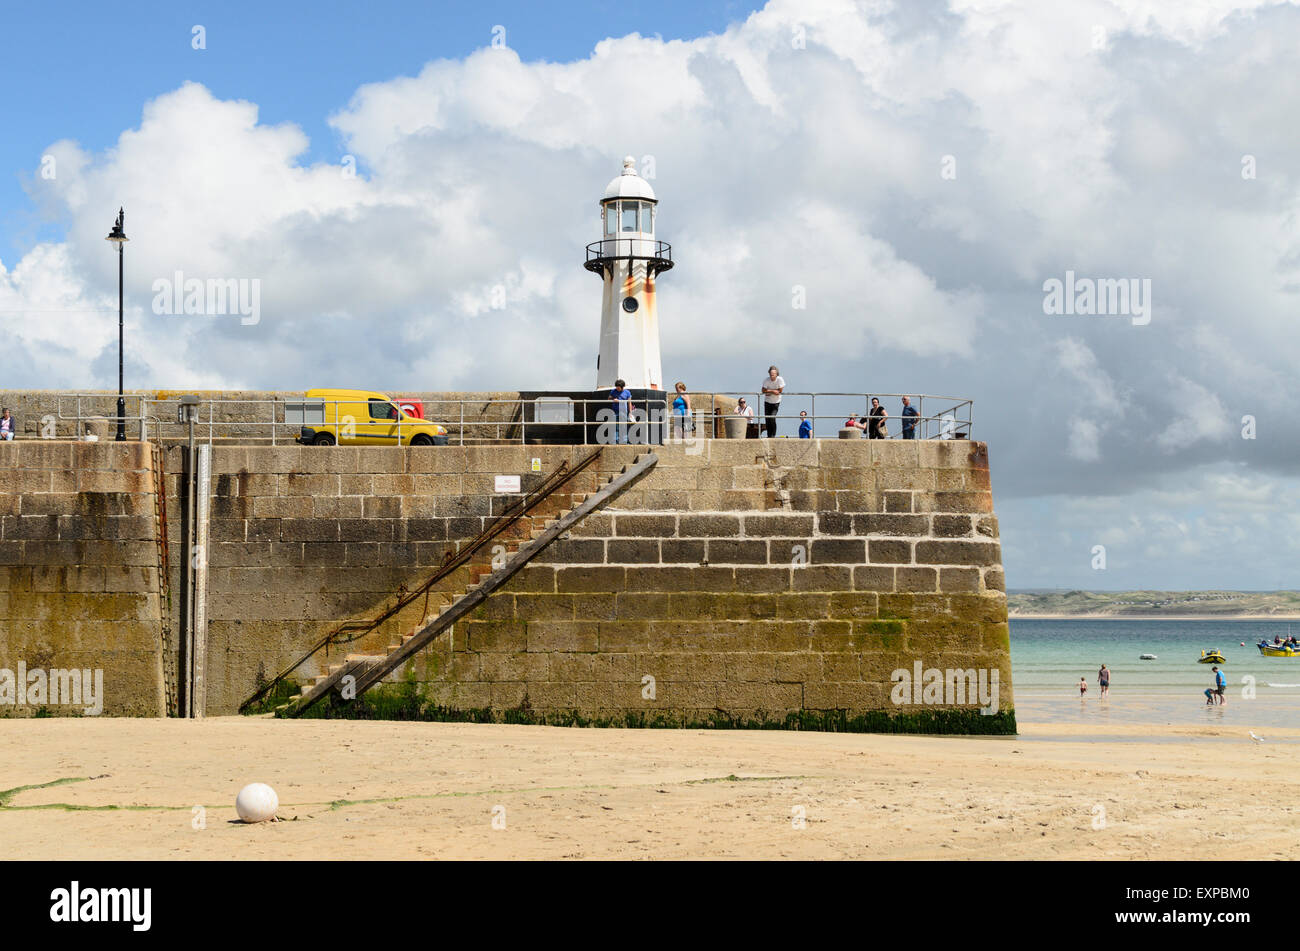 Smeatons Pier, St Ives, Cornwall, England, UK at low tide. - Stock Image